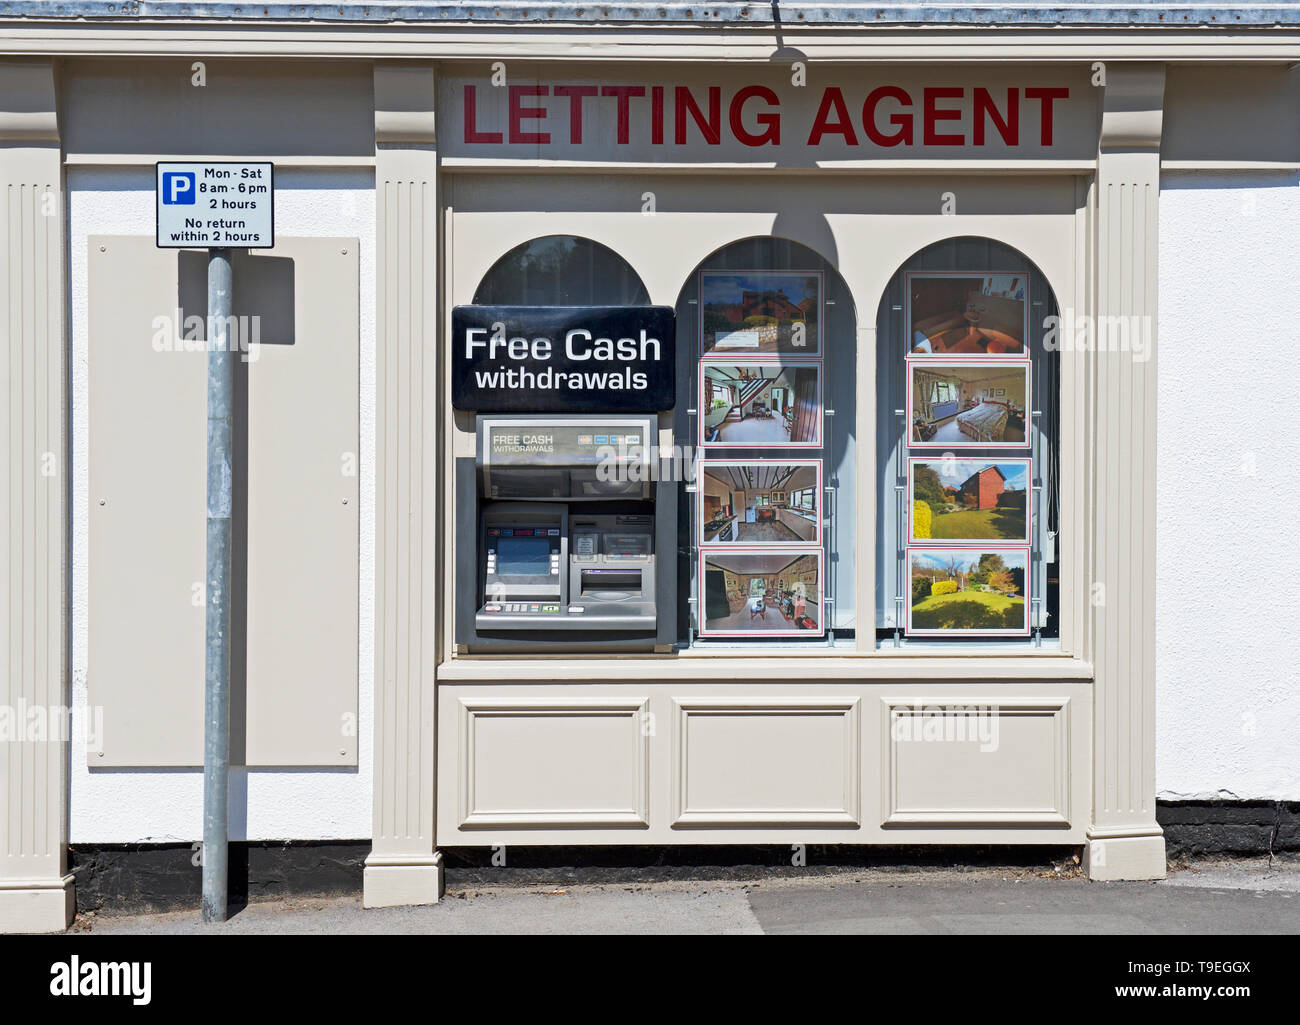 Cash machine in window of letting agent, Epworth,North Lincolnshire, England UK - Stock Image